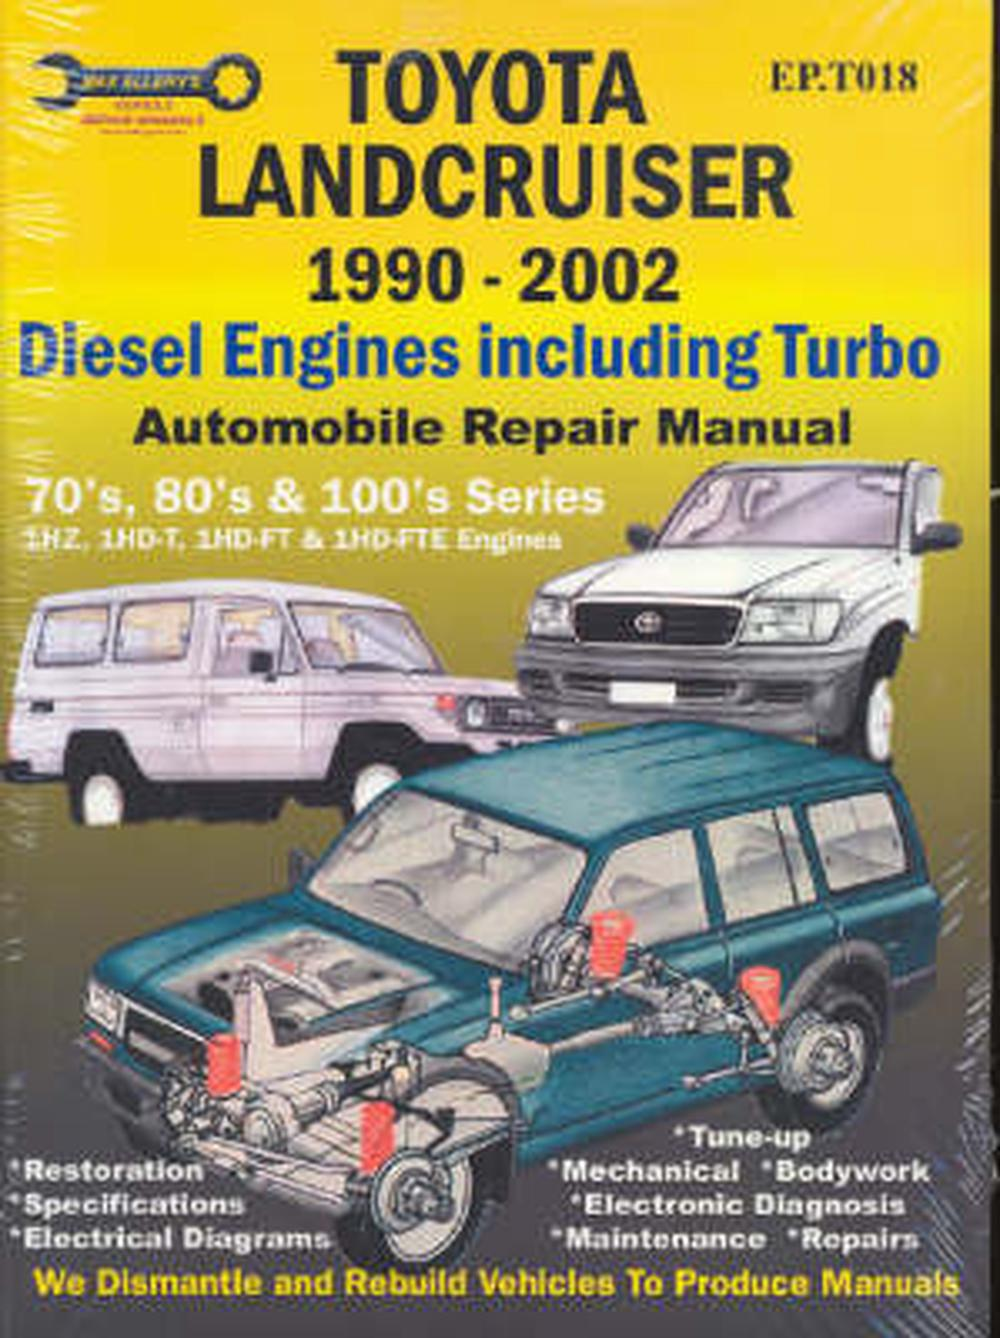 hight resolution of toyota landcruiser 1990 2007 automobile repair manual diesel engines including turbo by max ellery paperback 9781876720018 buy online at the nile